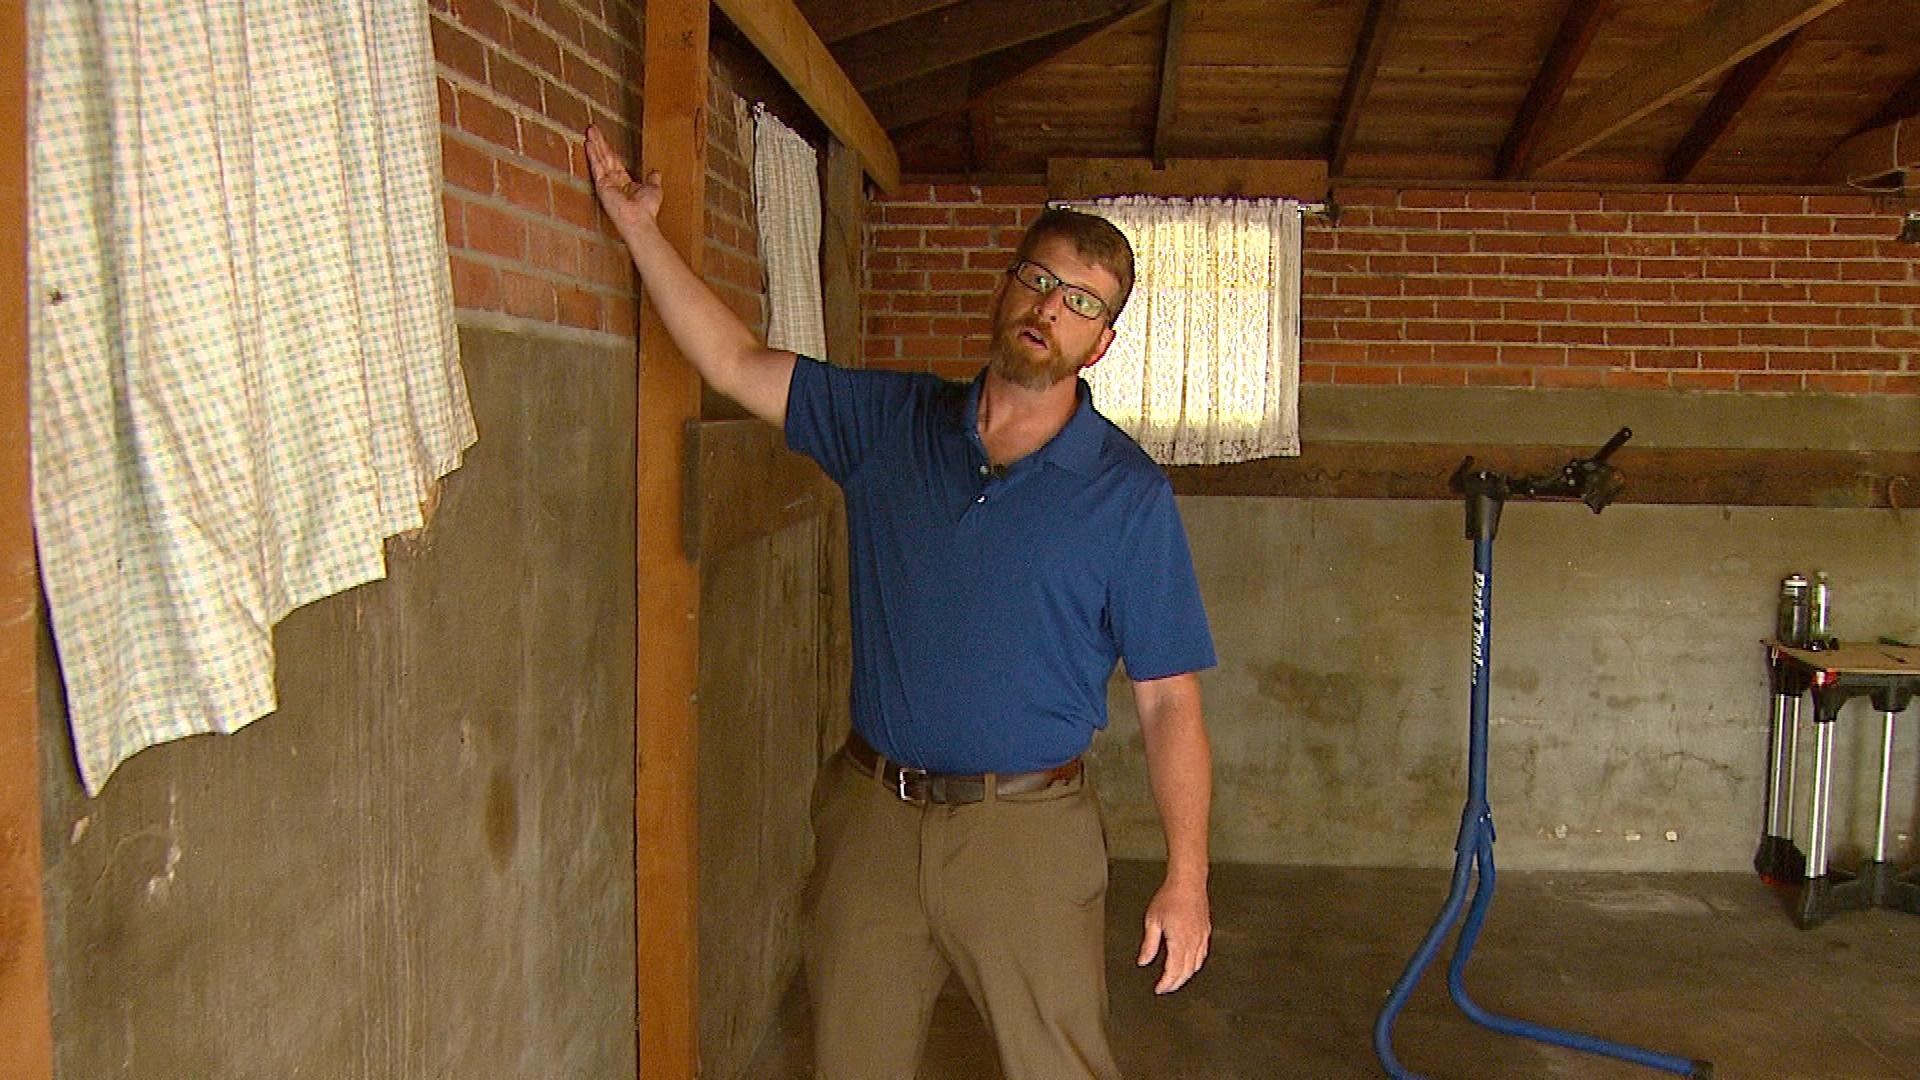 Fred Beck shows off work he needs on his garage (credit: CBS)